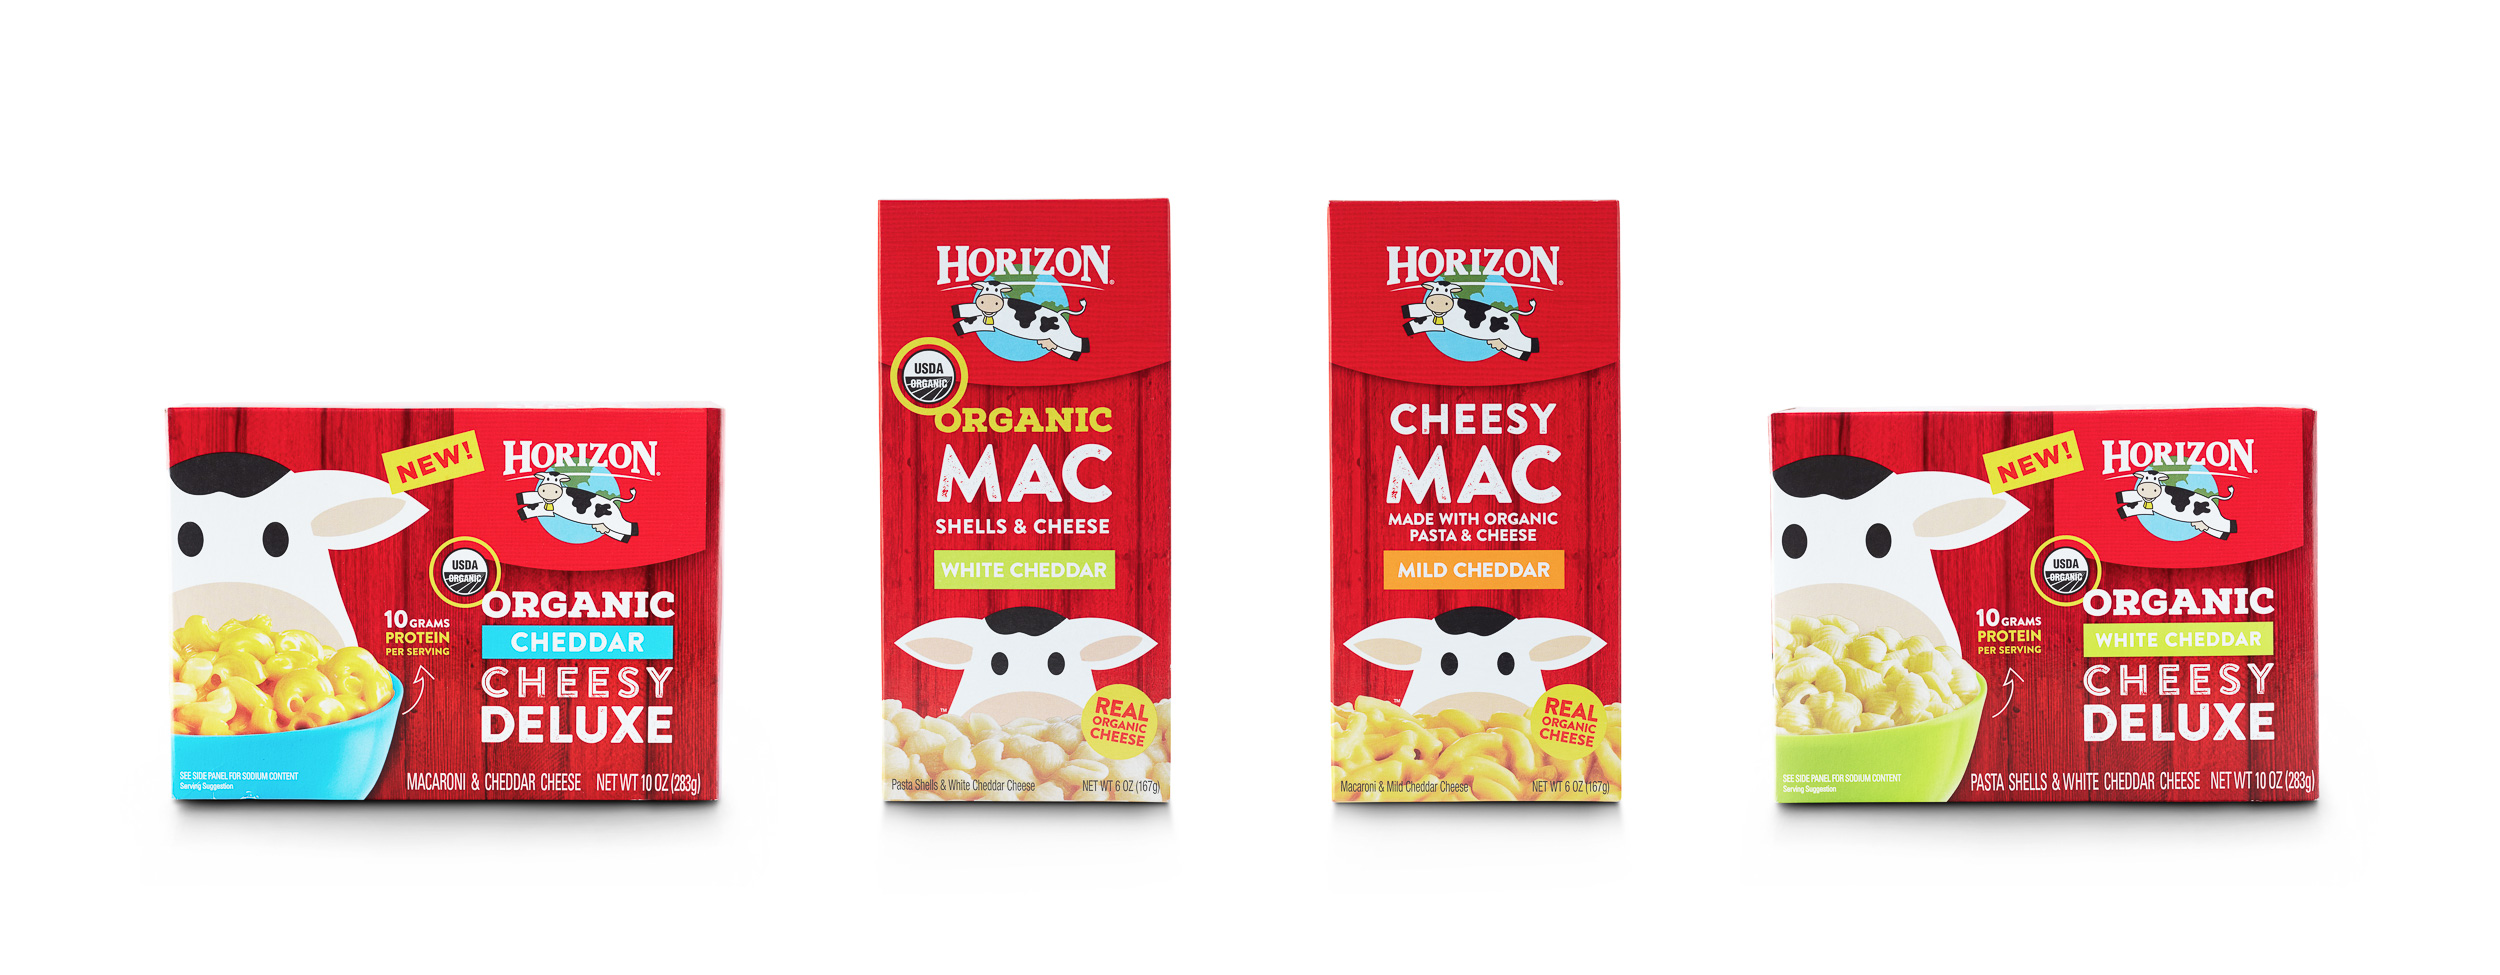 010_HorizonPackaging_MacNCheese-48